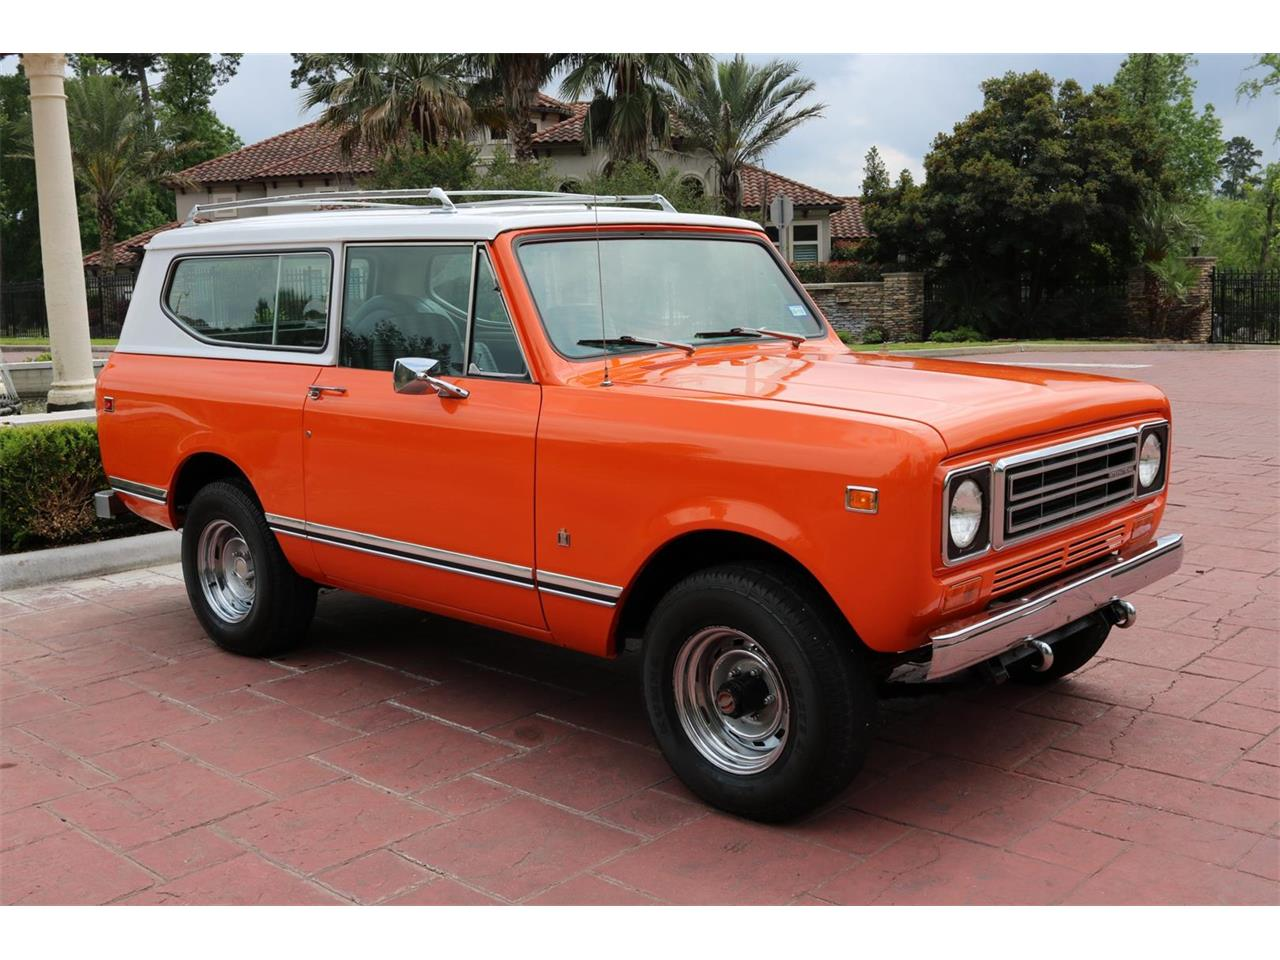 For Sale: 1977 International Harvester Scout II in Conroe, Texas